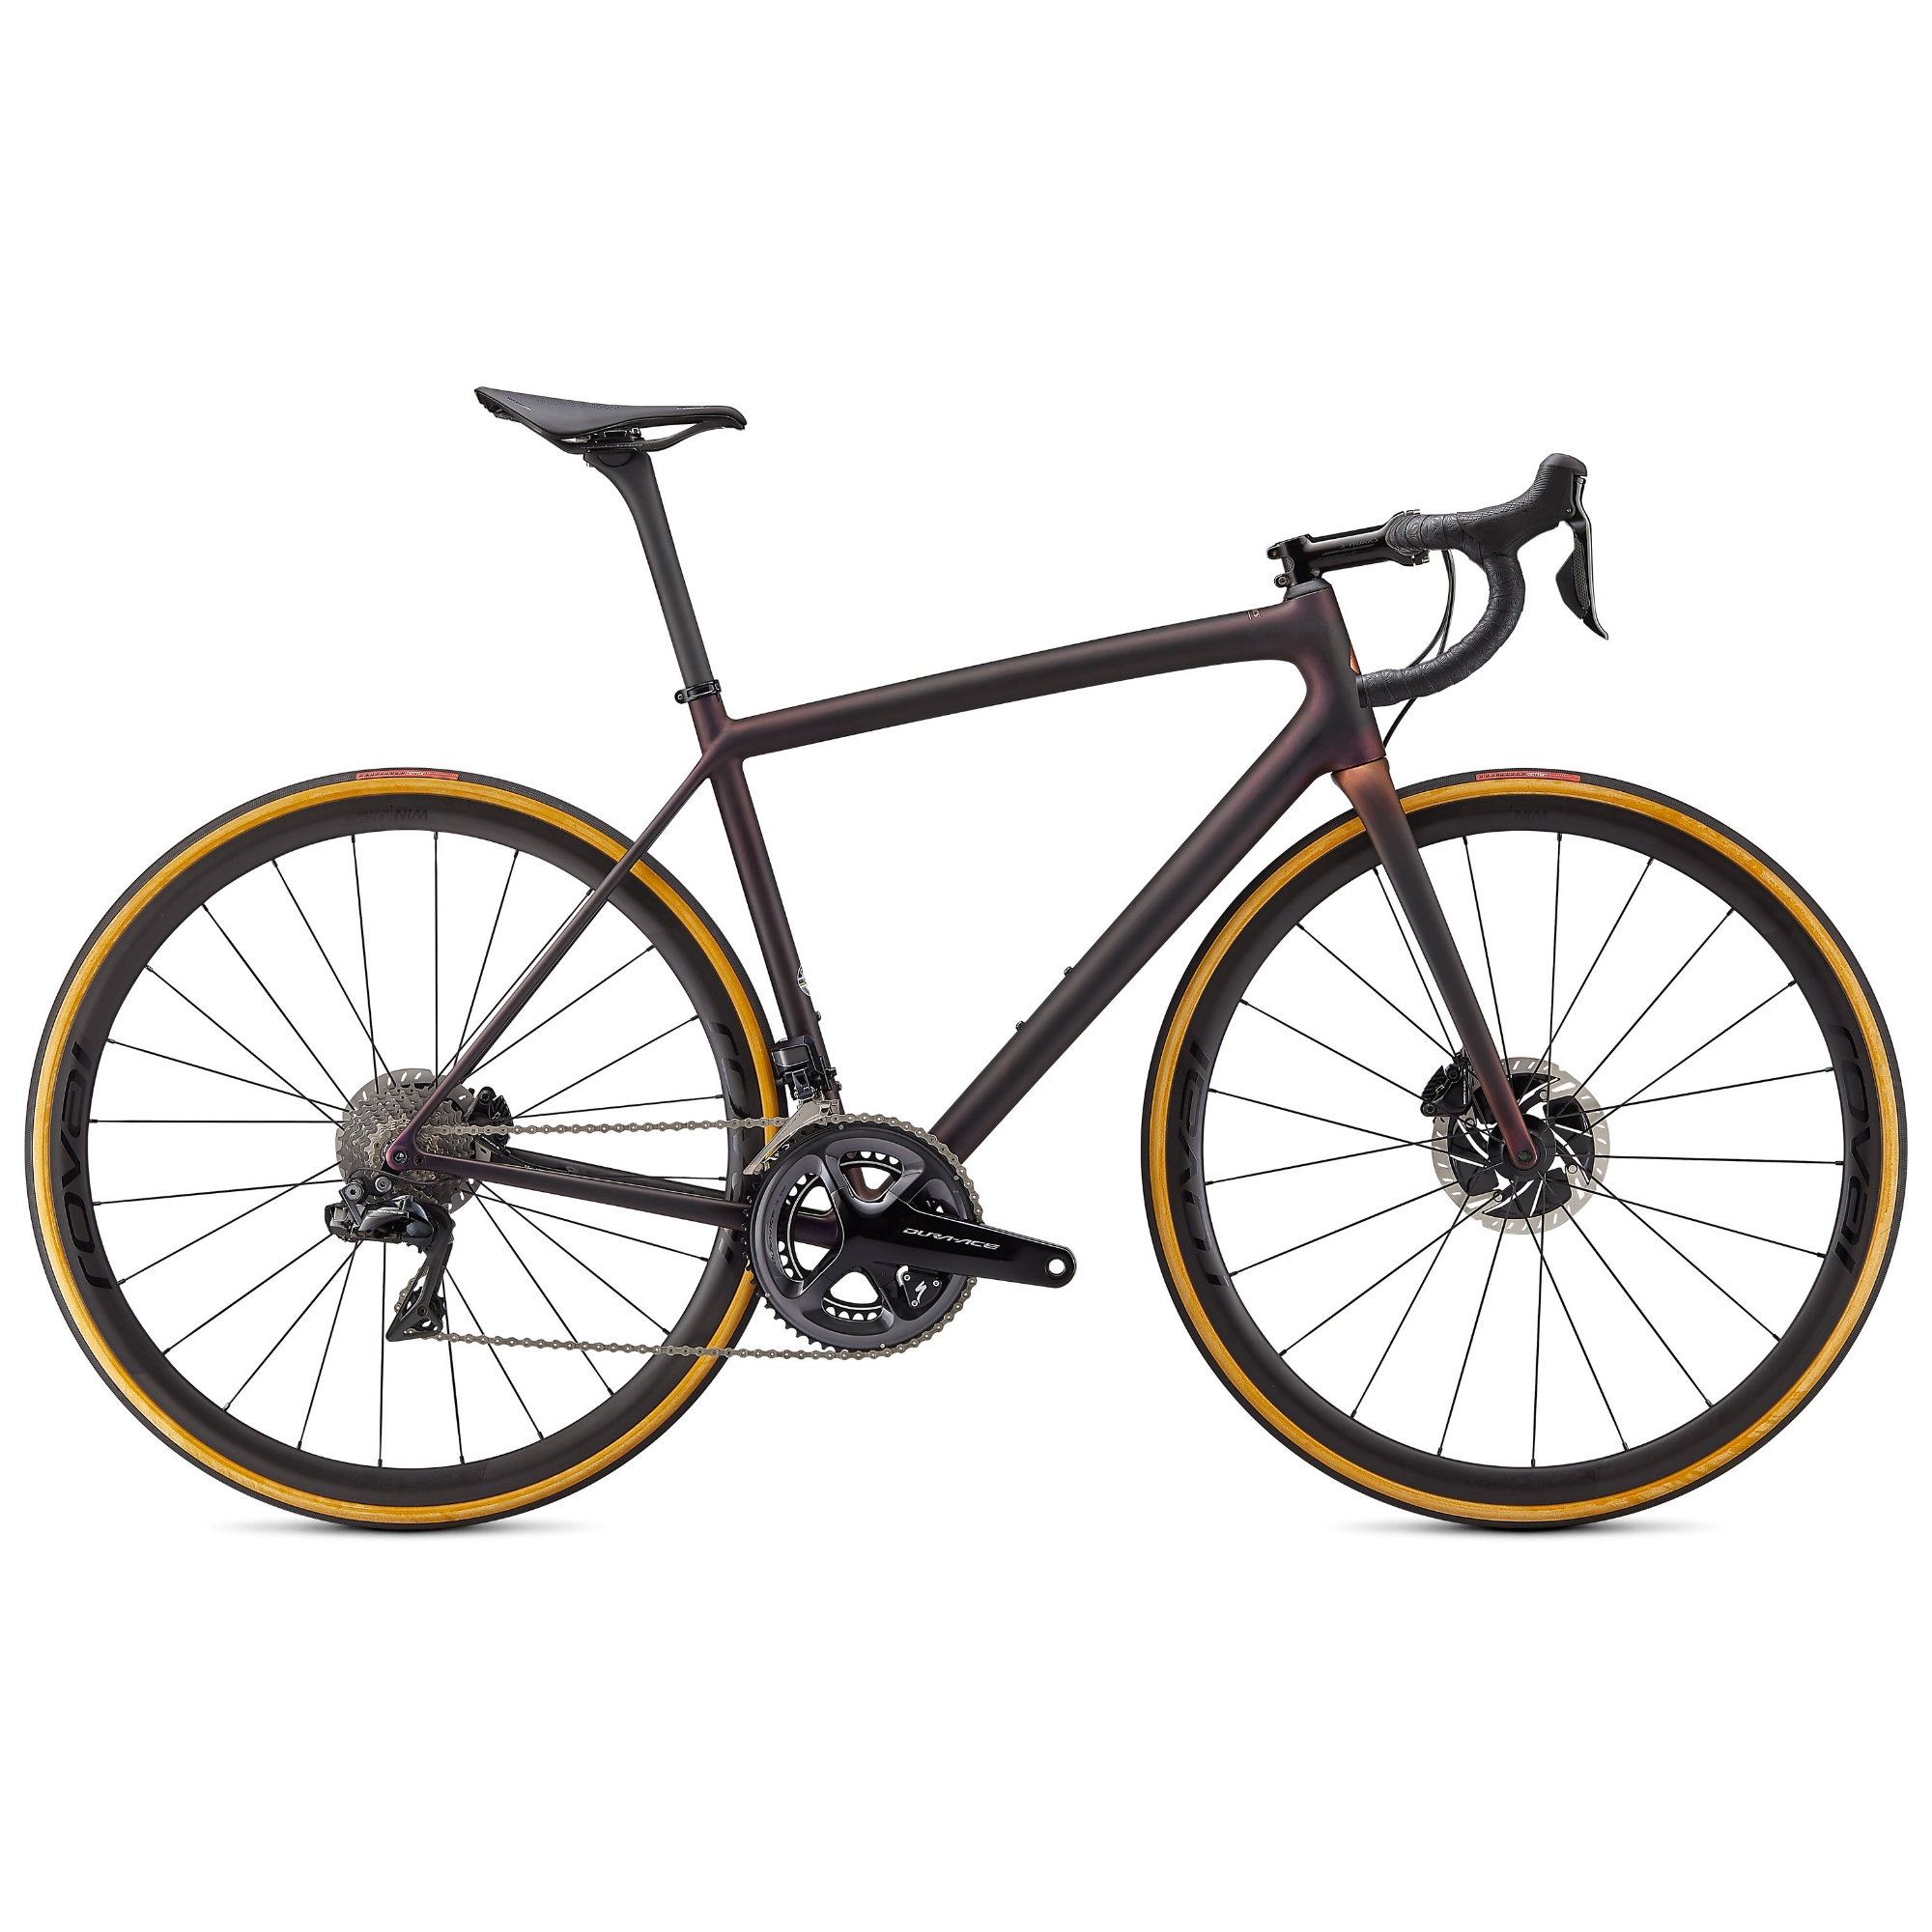 S-Works Aethos - Dura Ace Di2 97221-0149